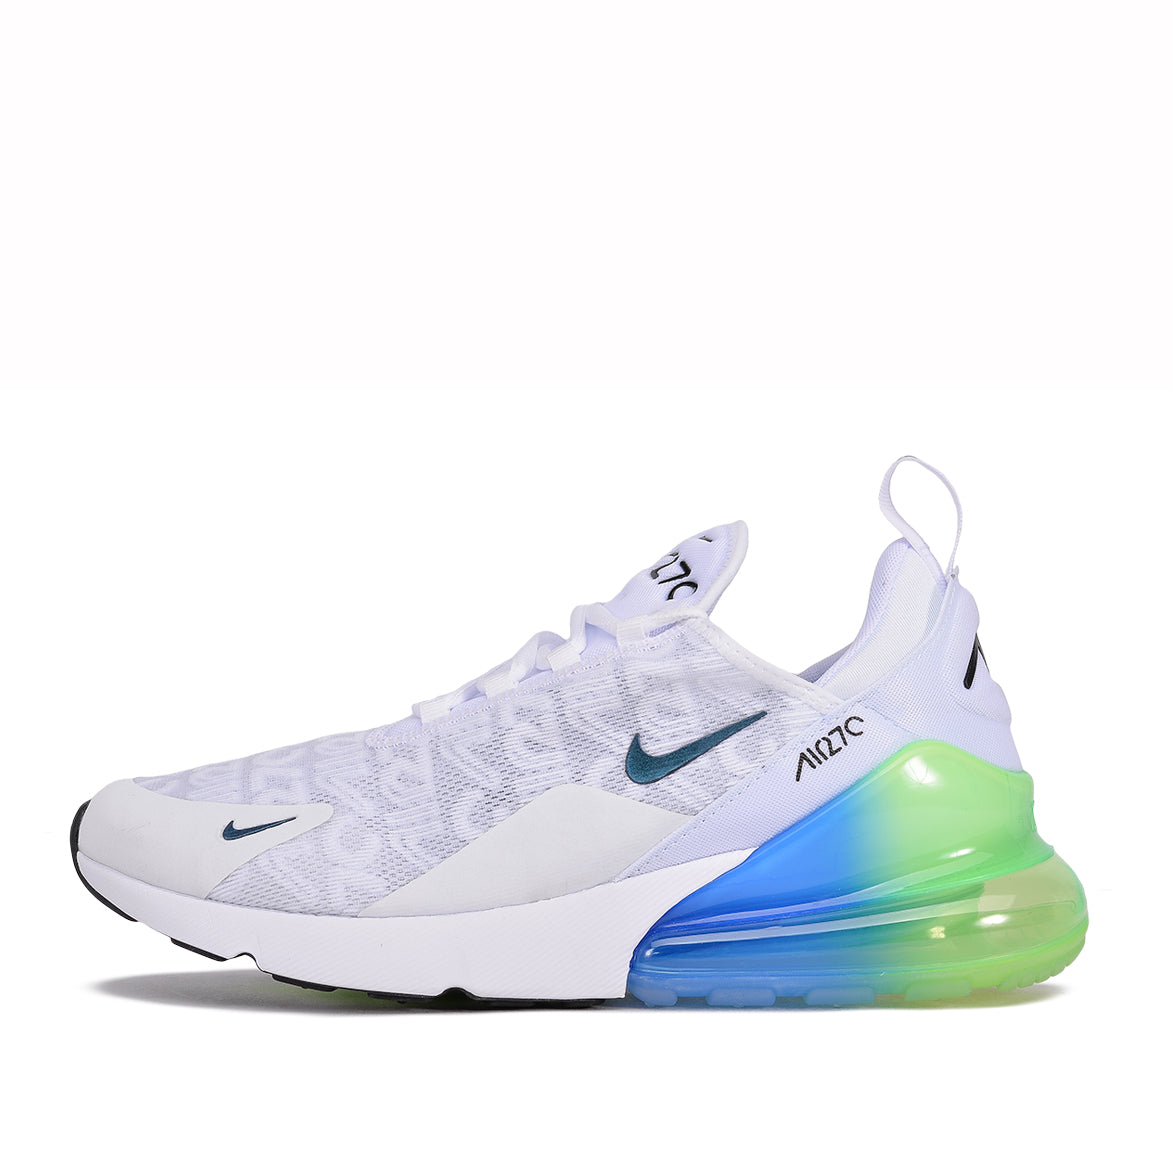 cafde26cc9 AIR MAX 270 SE - WHITE / WHITE / LIME BLAST | City Blue